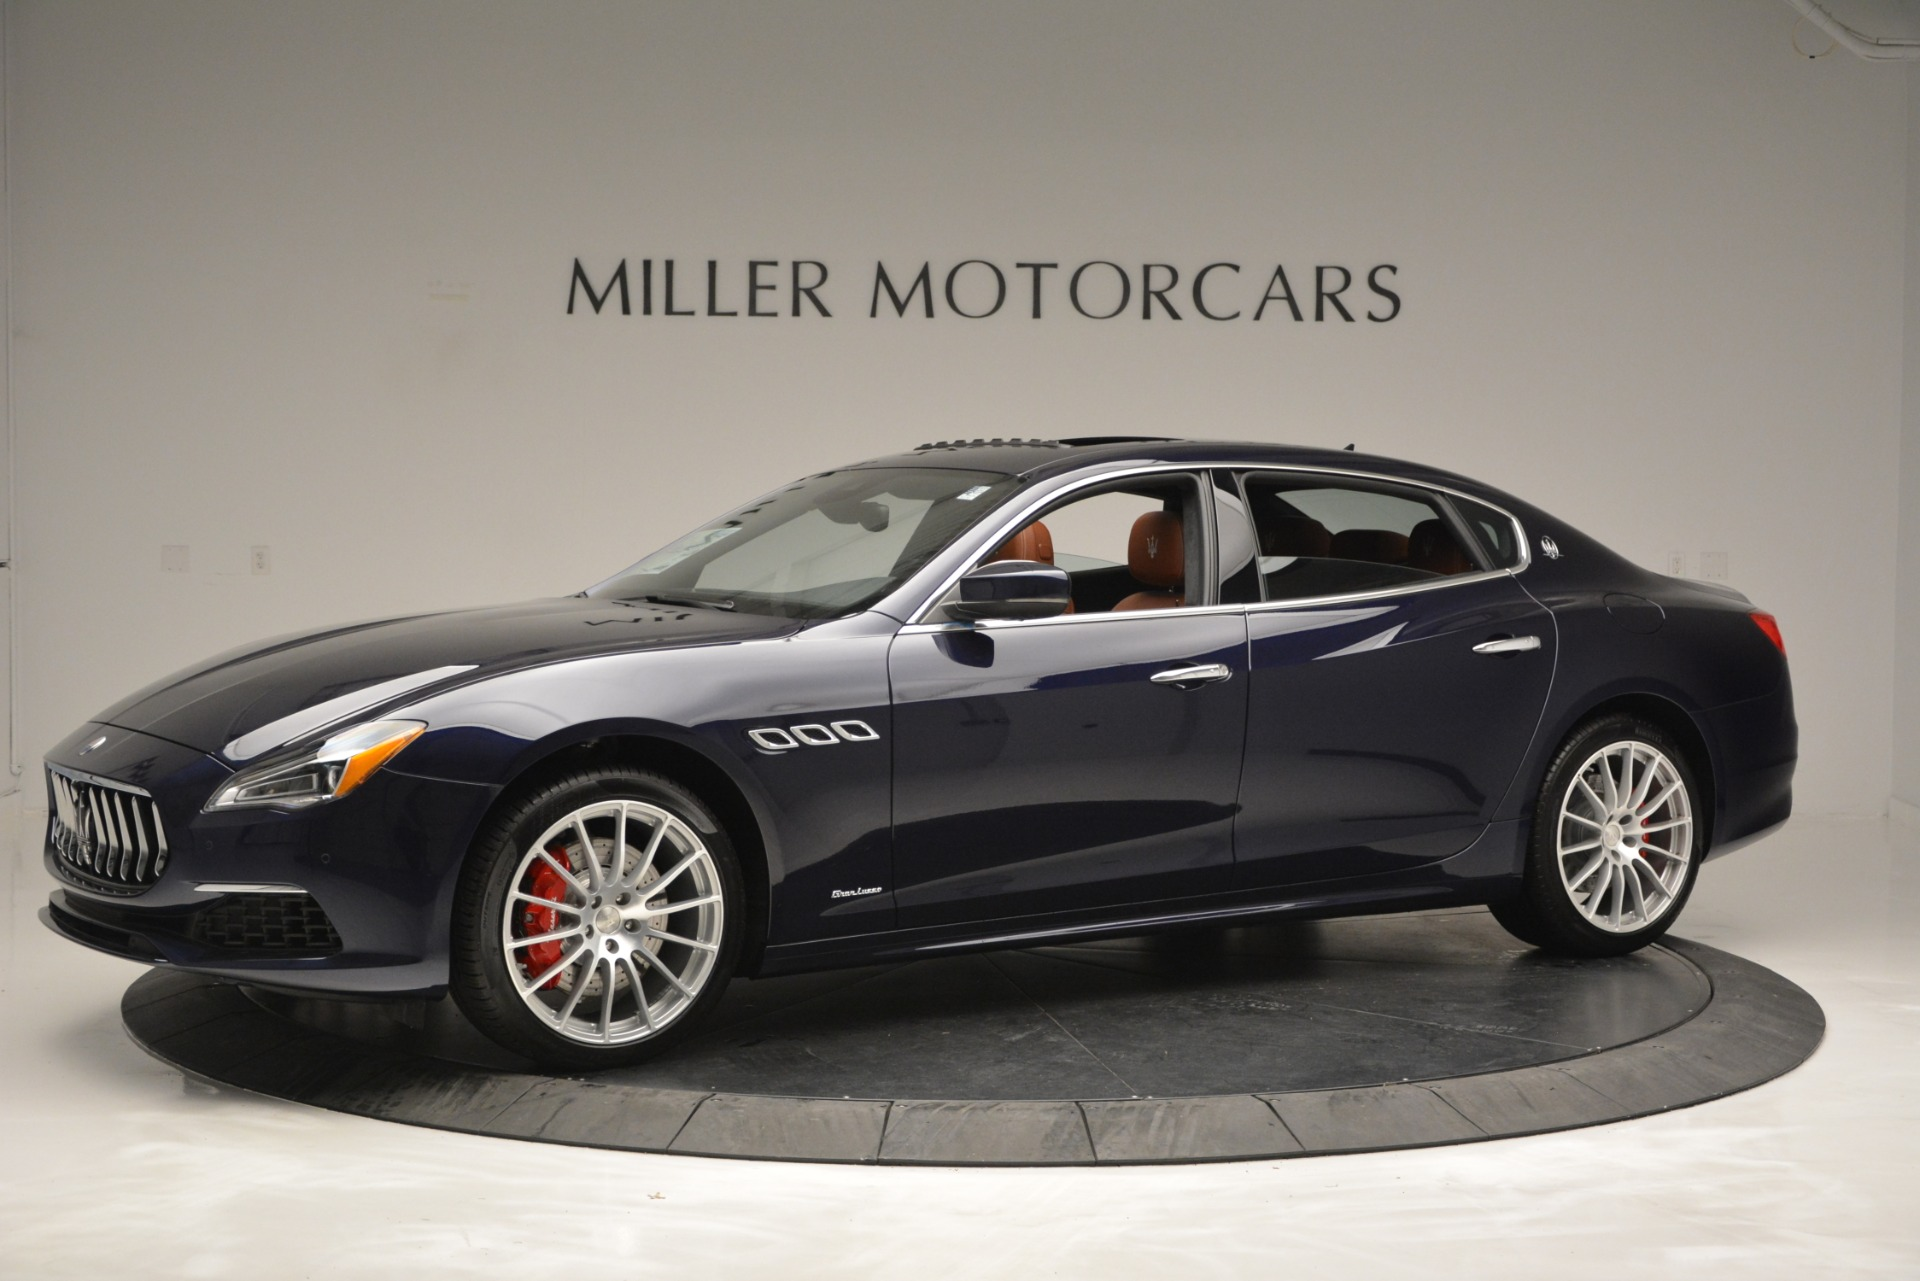 New 2019 Maserati Quattroporte S Q4 GranLusso For Sale In Greenwich, CT 2620_p2